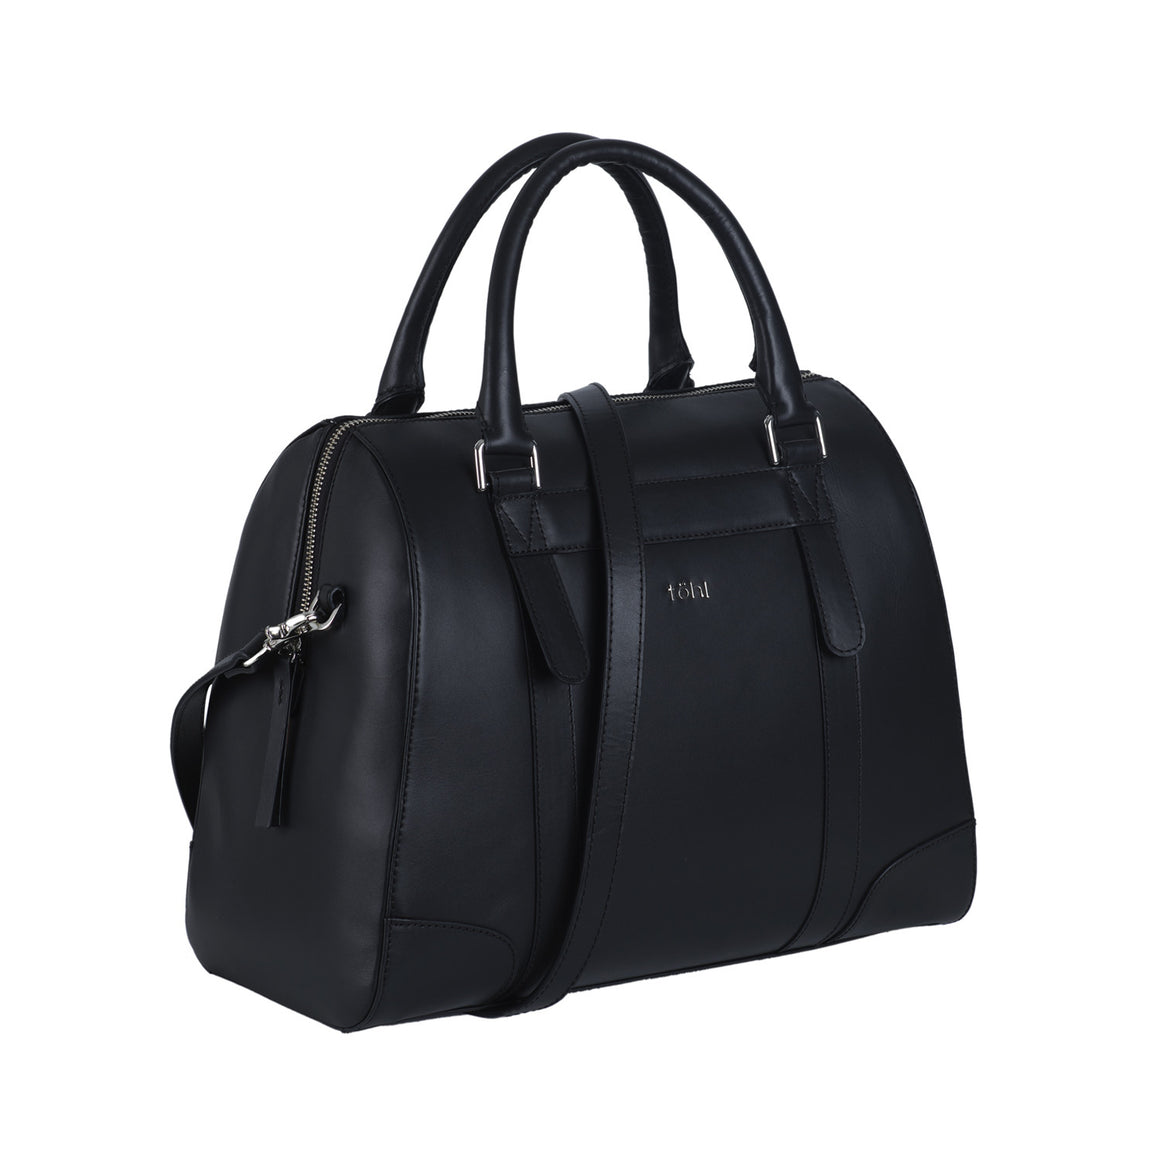 HH 0013 - TOHL NASSAU WOMEN'S TOTE BAG - CHARCOAL BLACK